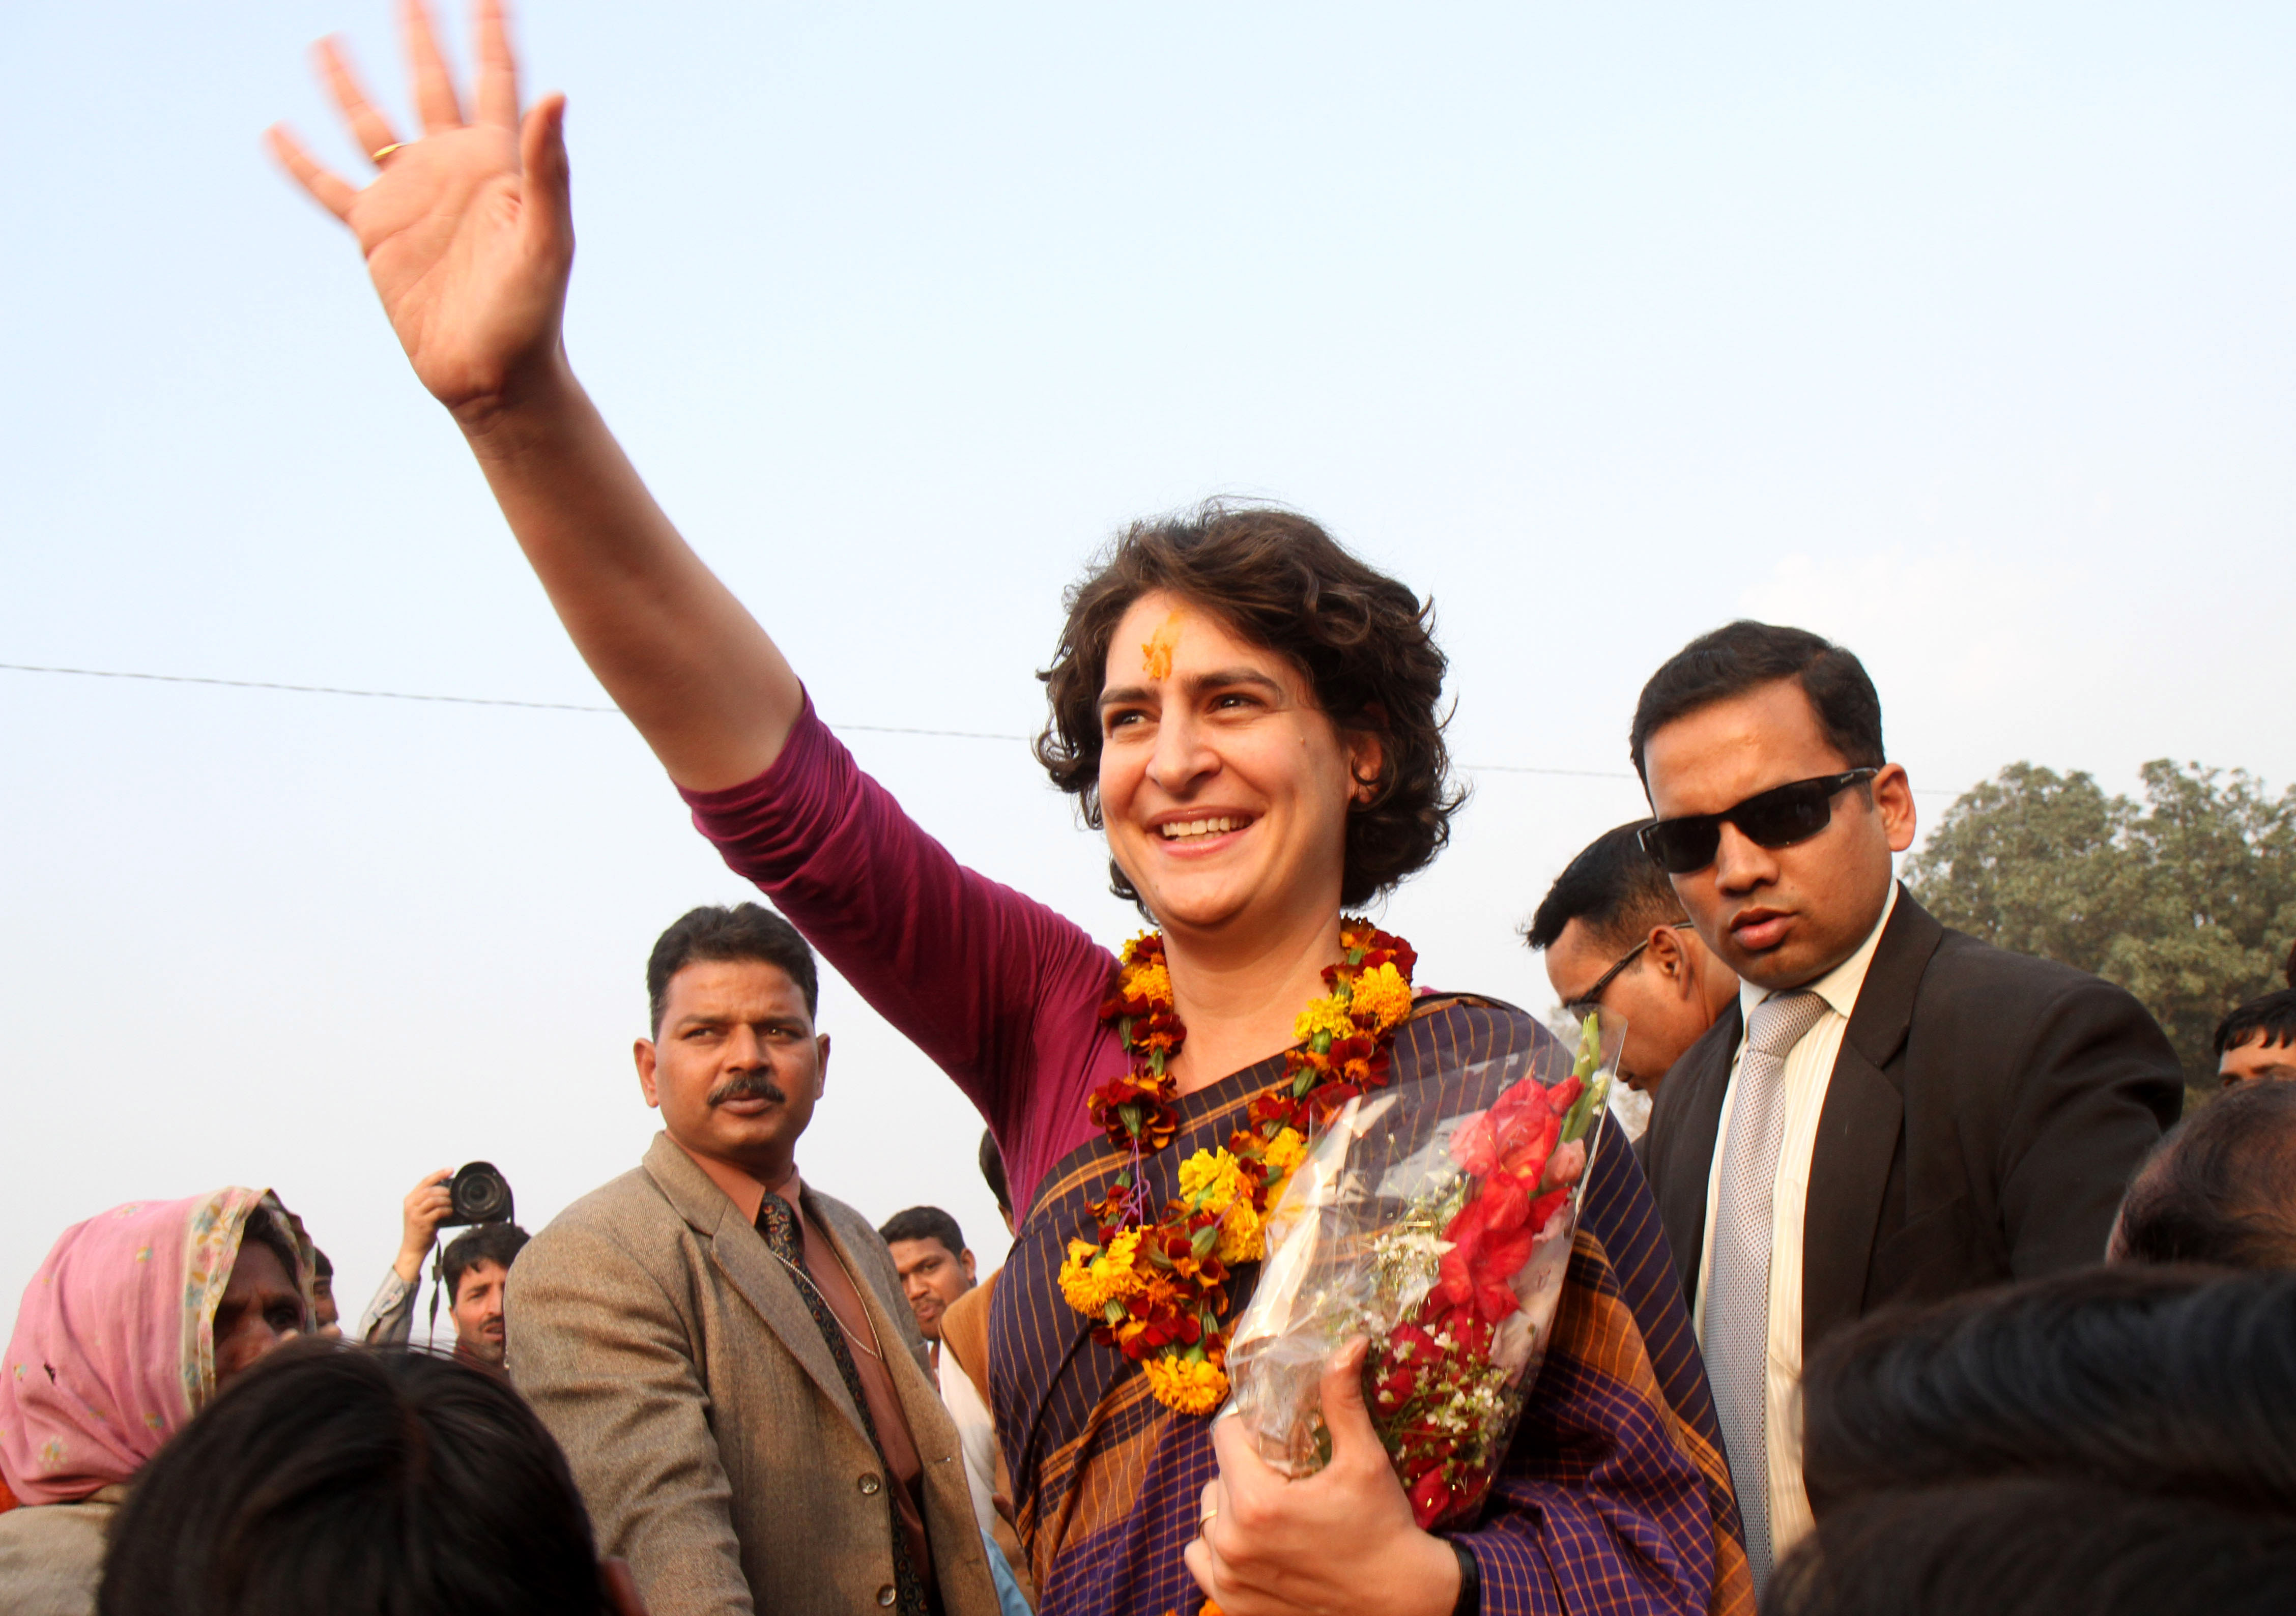 Many hope Priyanka Gandhi's decision to enter into frontline politics will provide a boost to the Congress party ahead of the polls, on April 11.